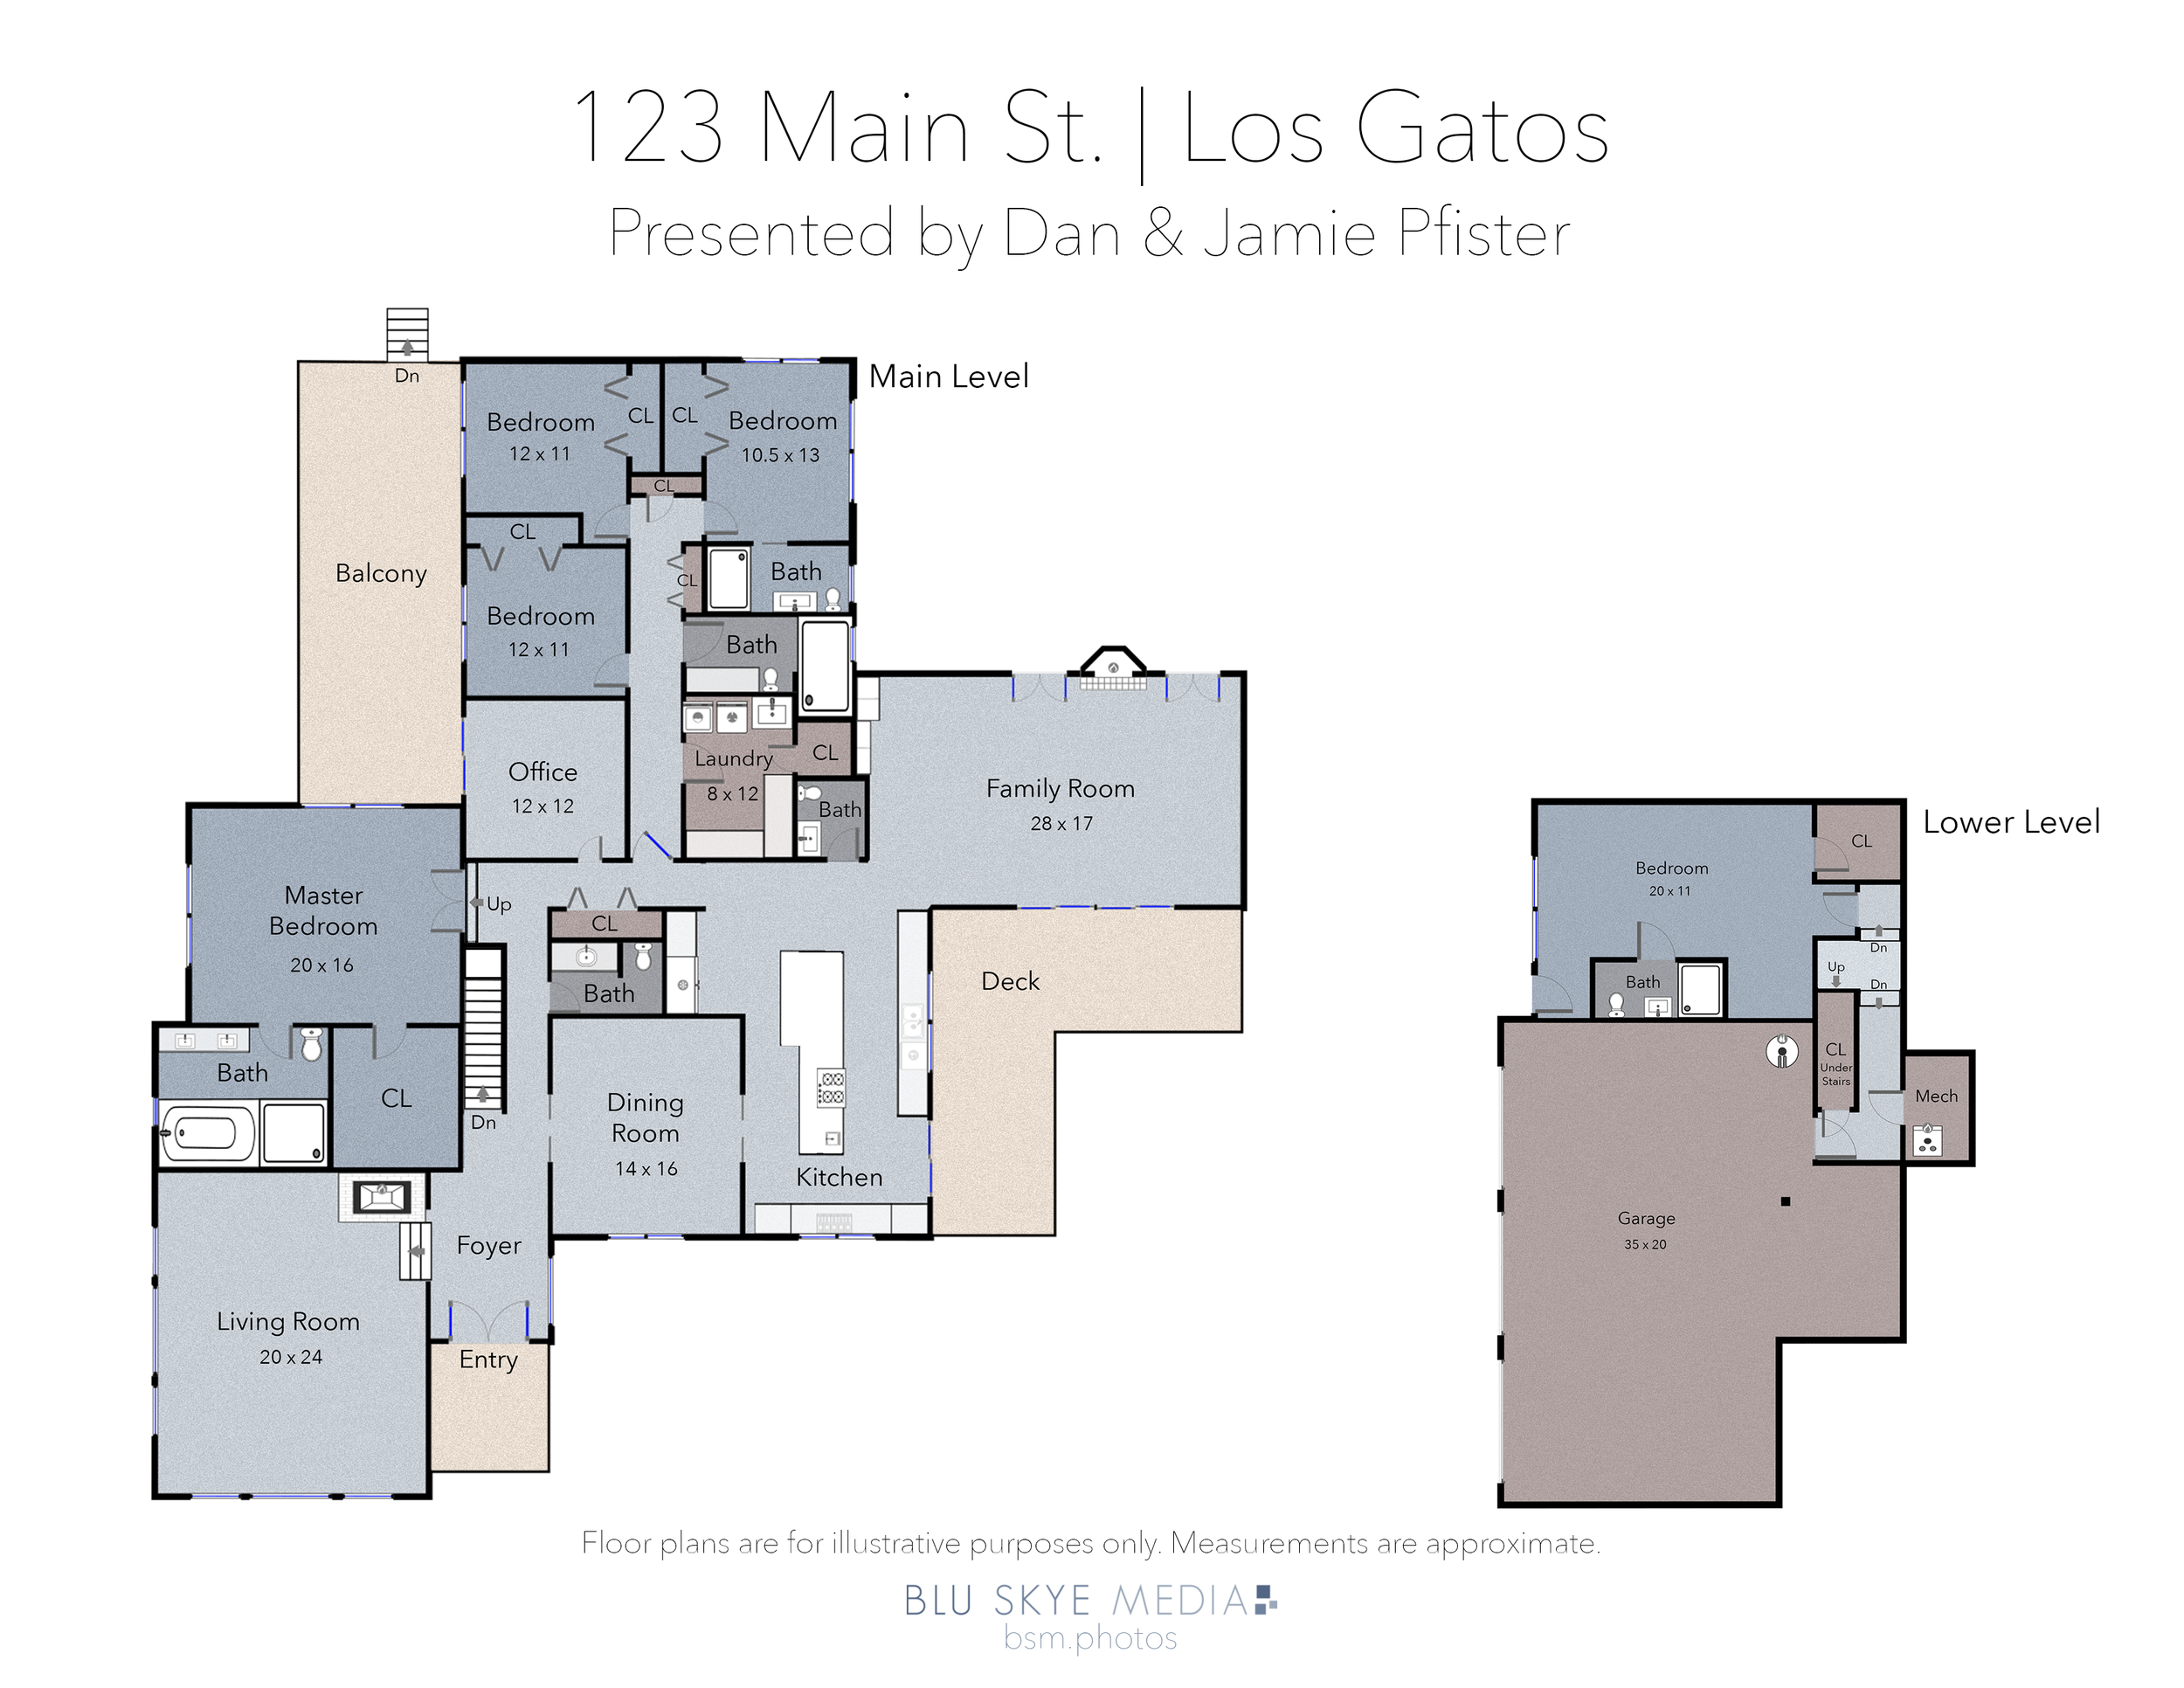 Los Gatos Floor Plan Sample